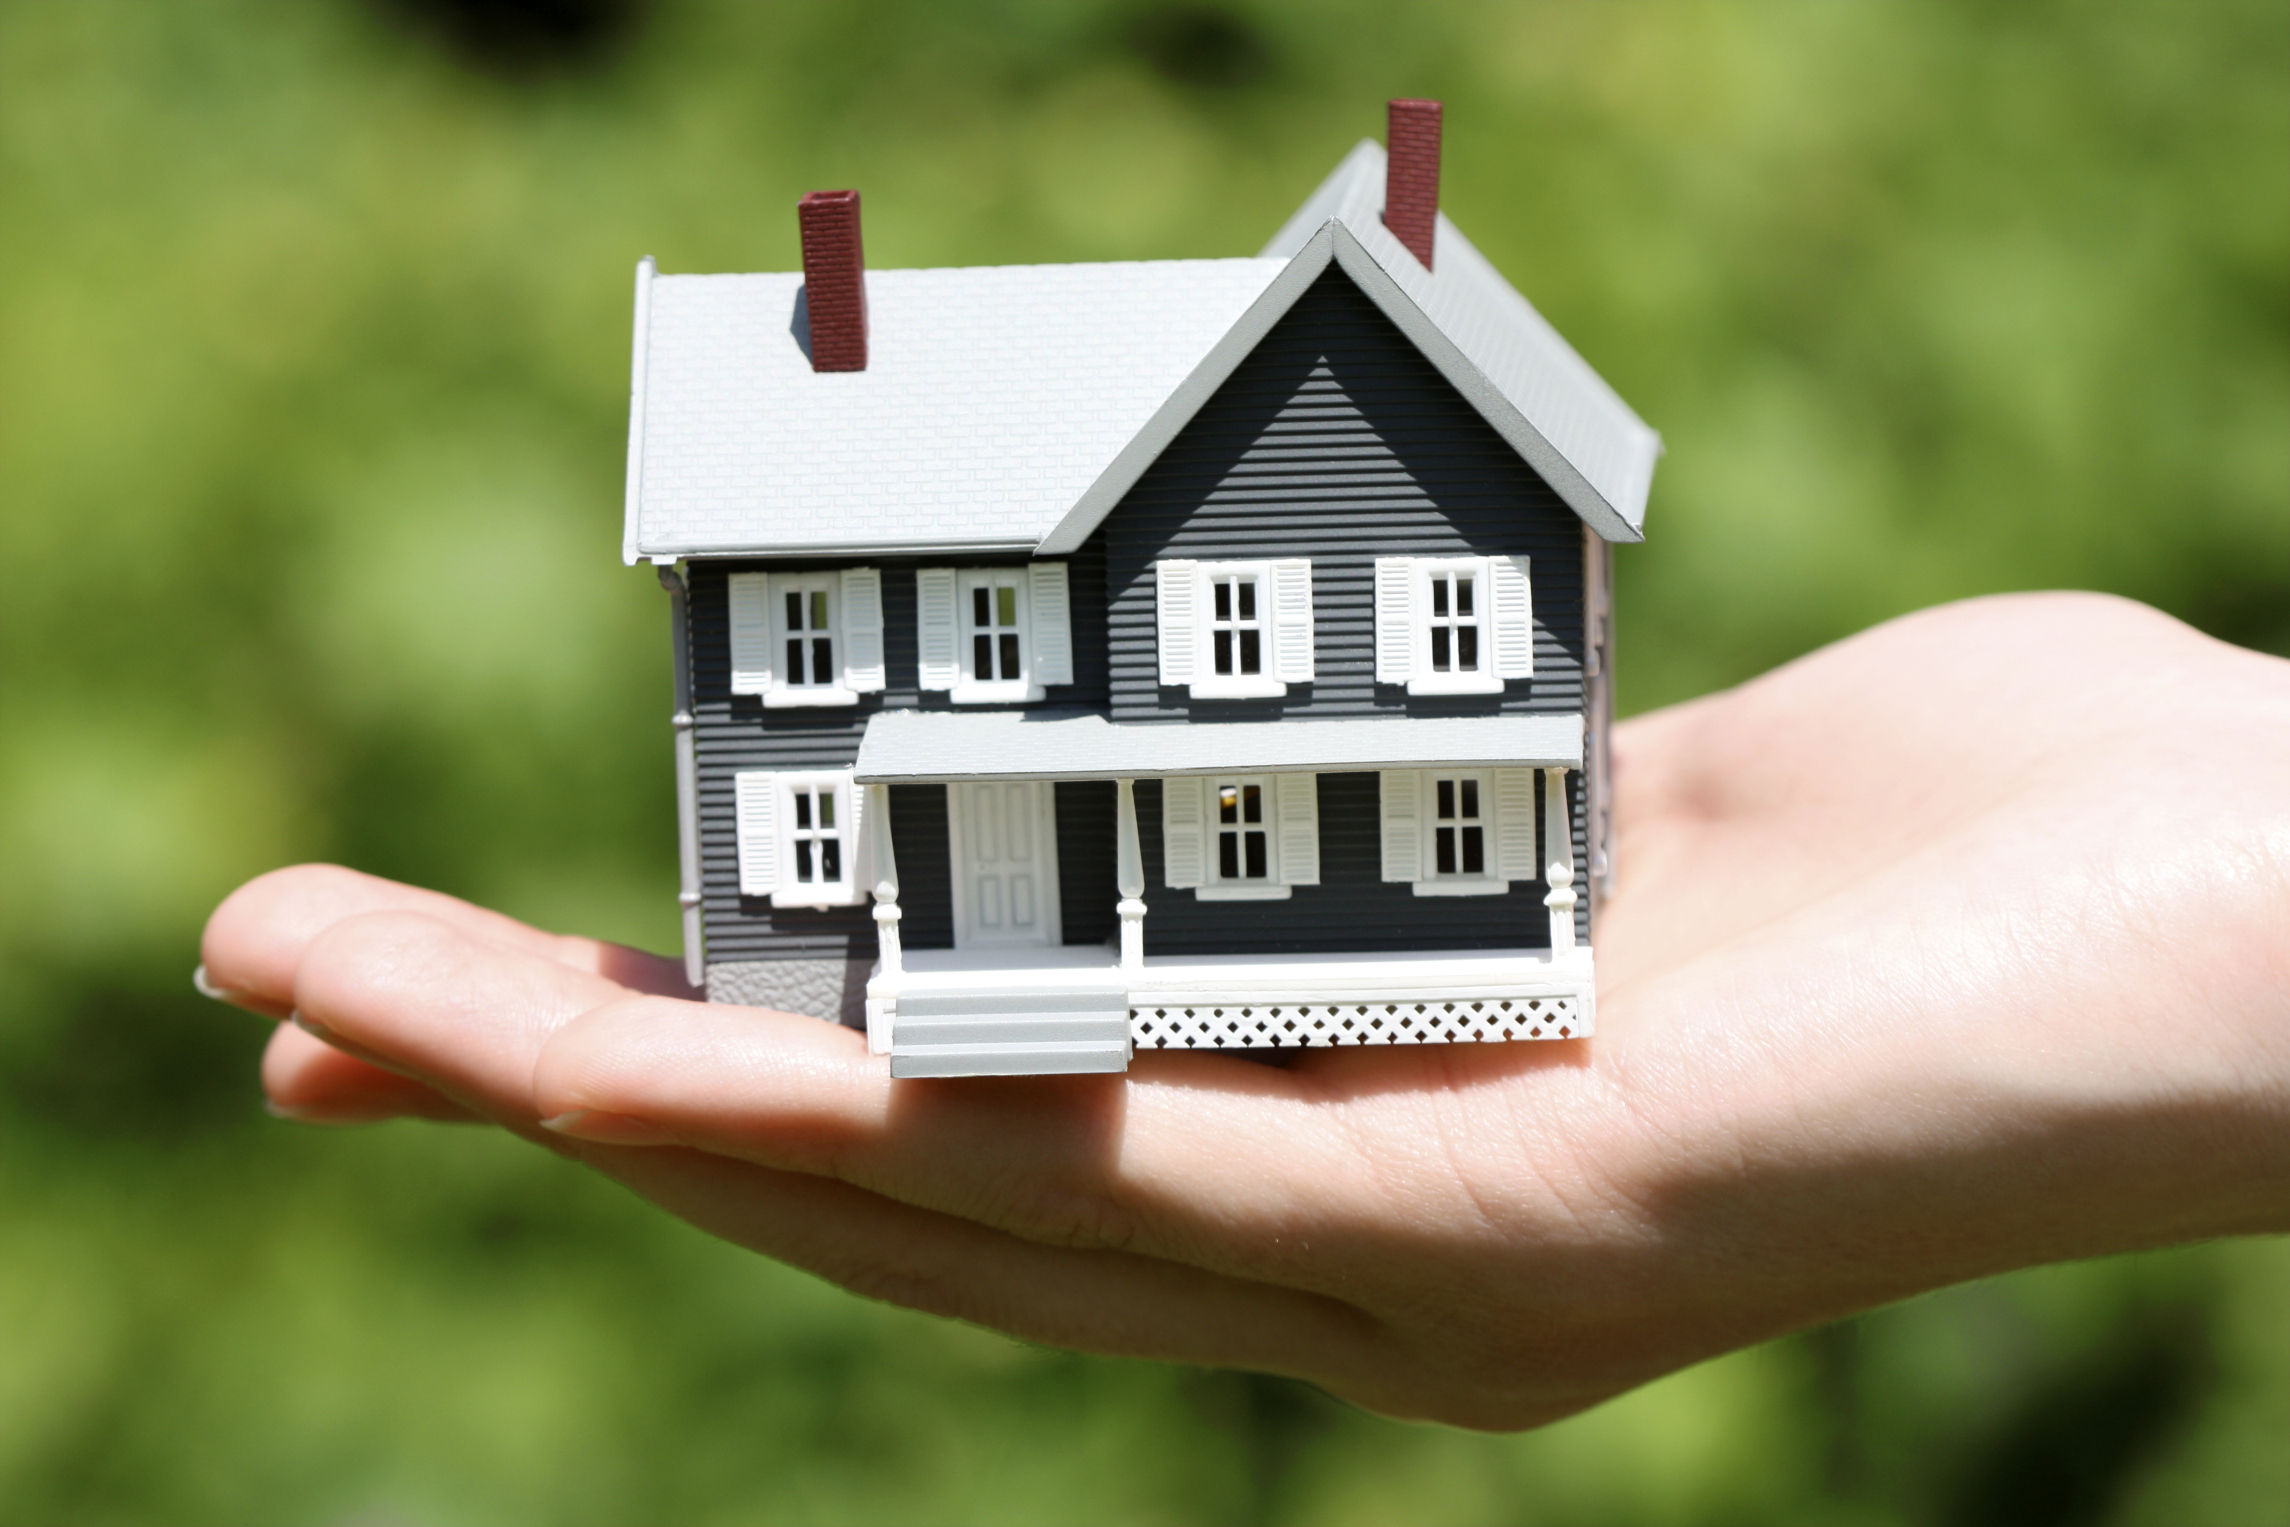 reasons why open houses don't sell houses